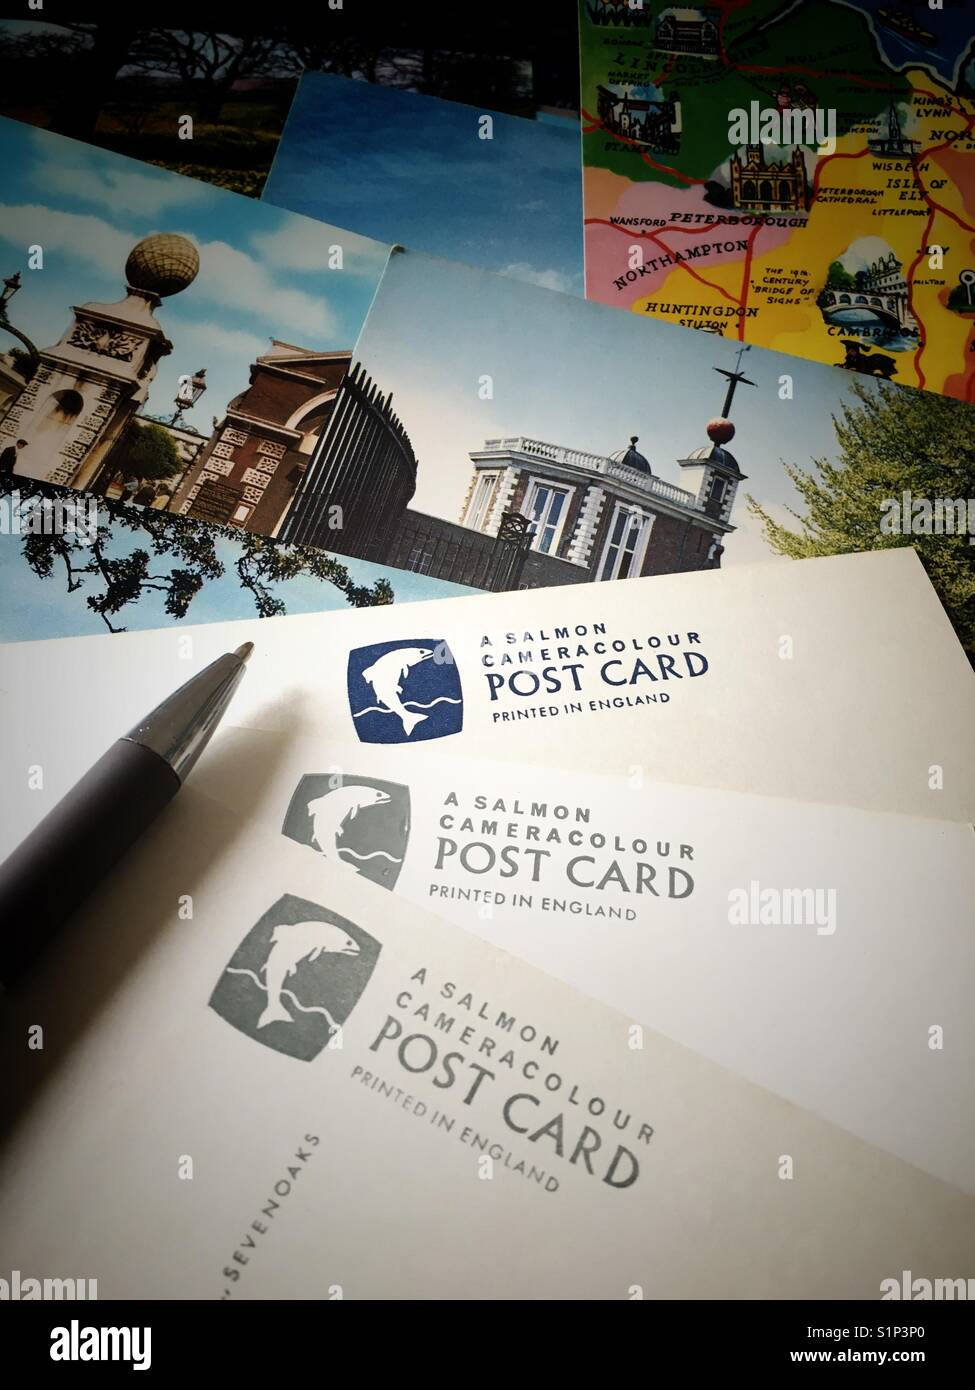 UK Postcards printed by publisher J Salmon - Stock Image